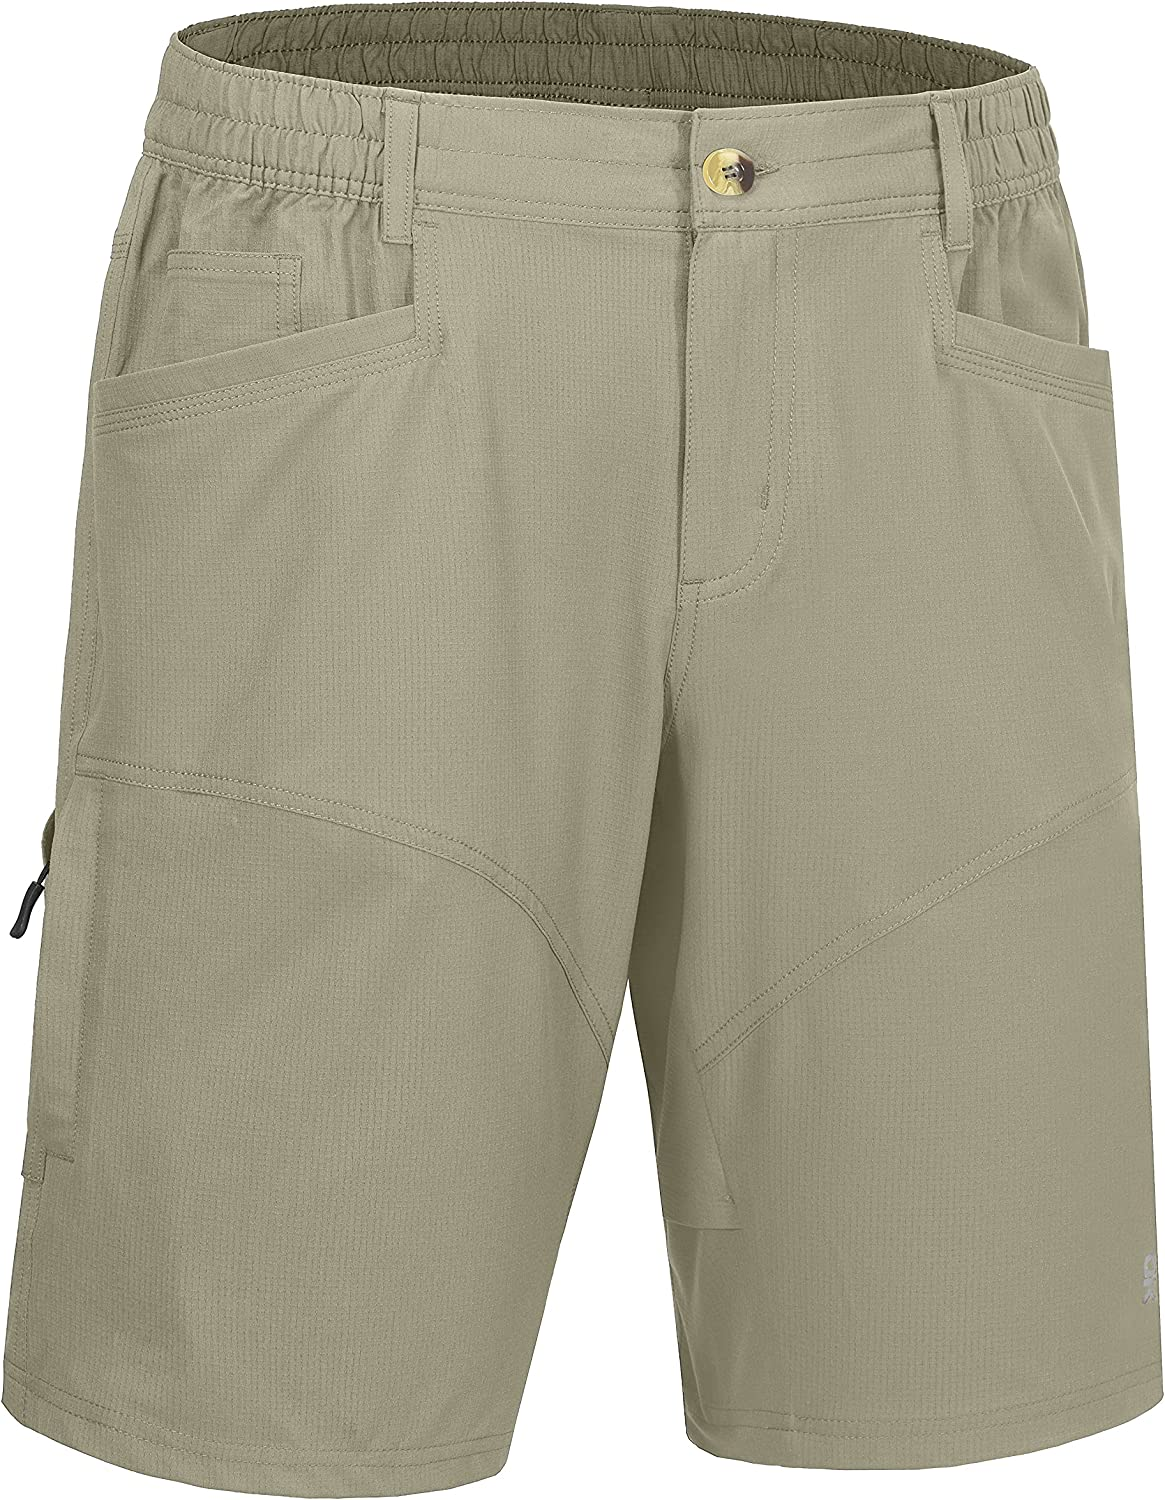 Little Donkey Andy Men's Quick Dry Hiking Wor Shorts High Cheap mail order shopping quality new for Walking